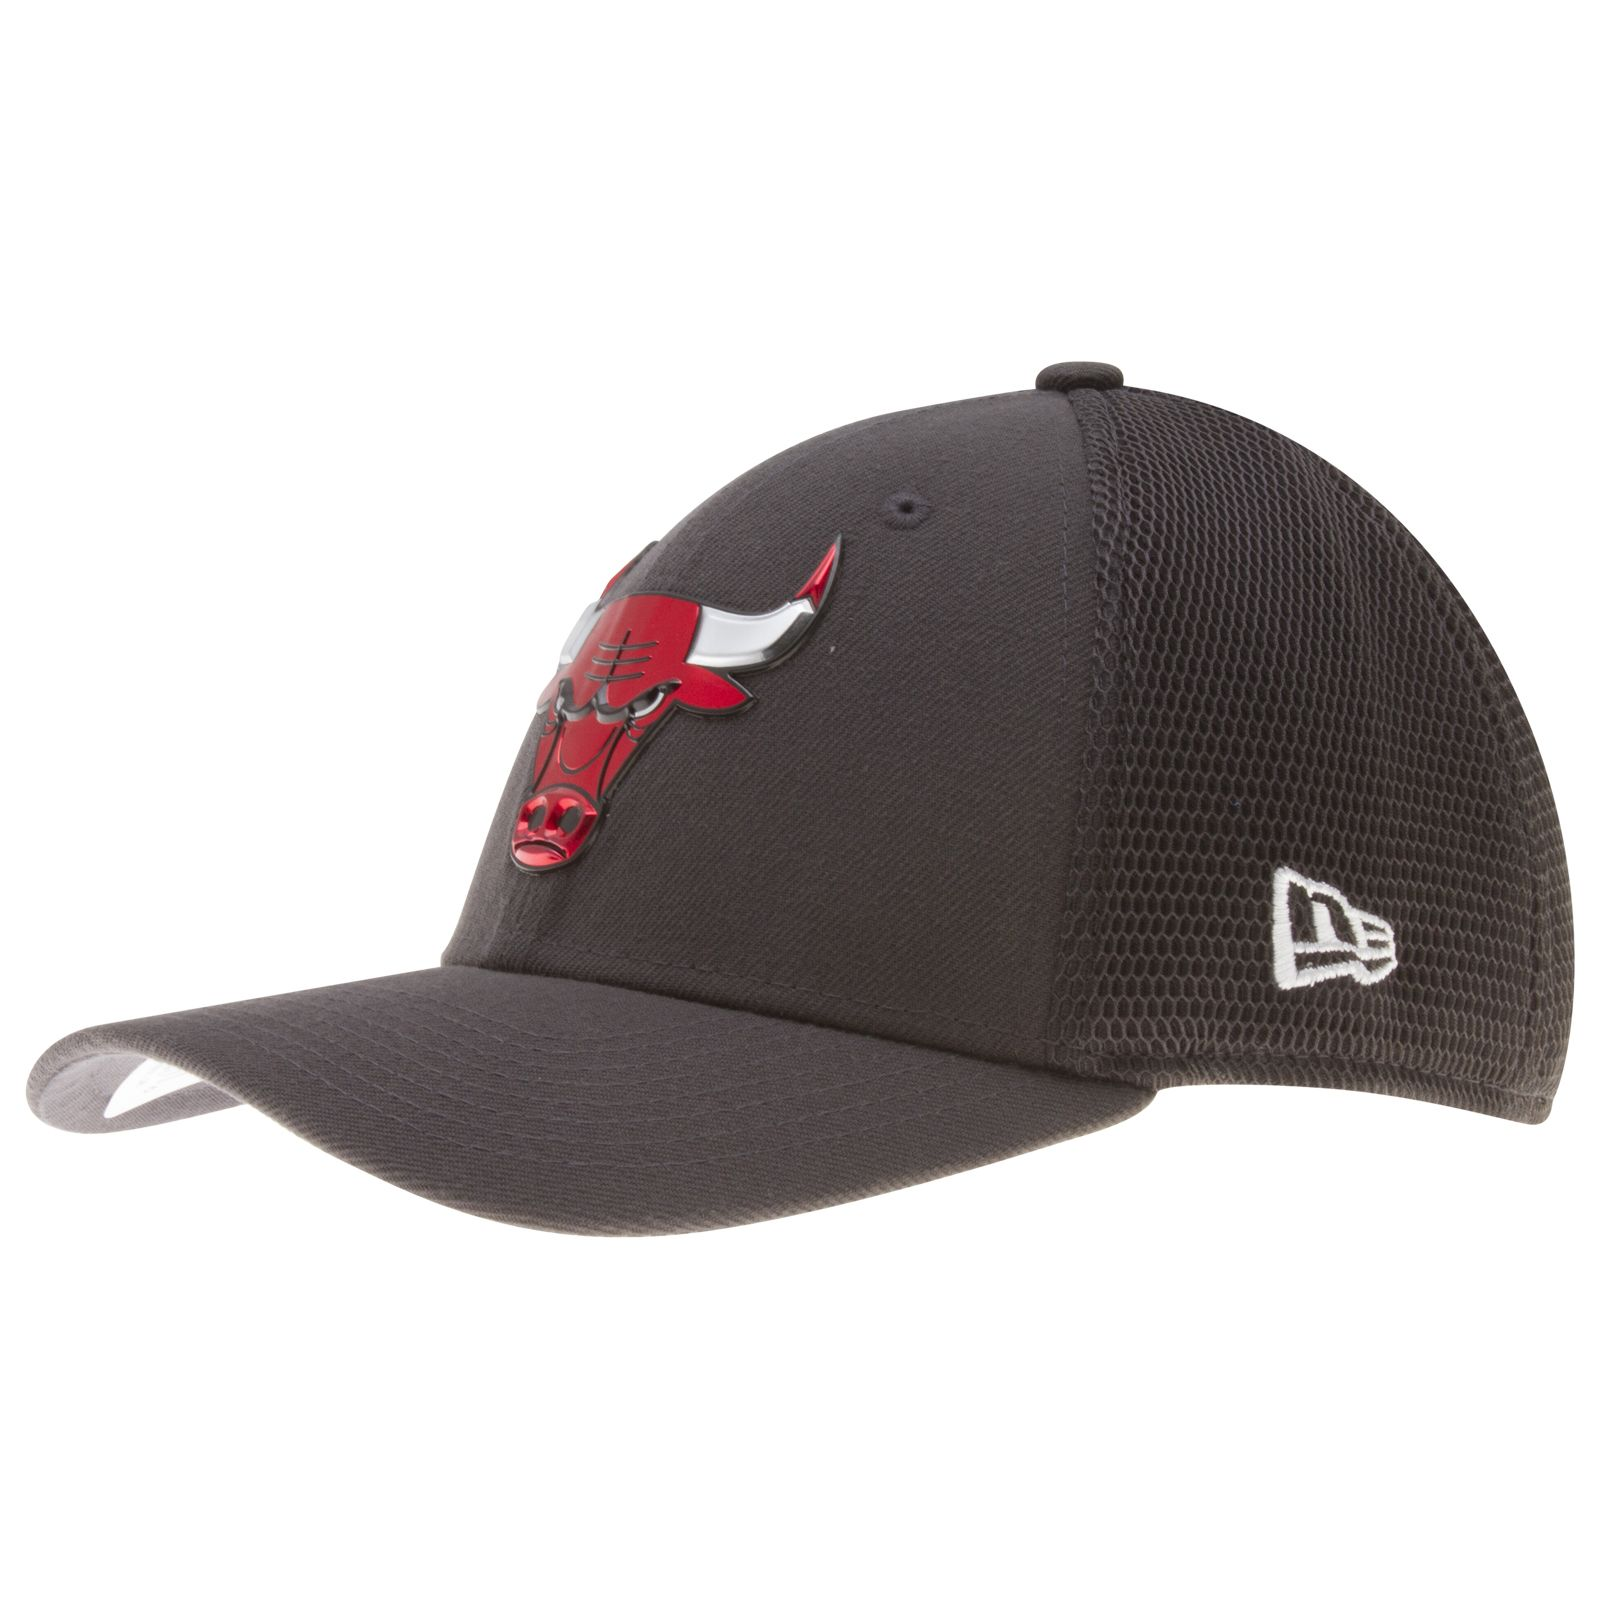 4c0c832064a ... discount code for chicago bulls charcoal liquid chrome bull logo flex  fit hat by new era